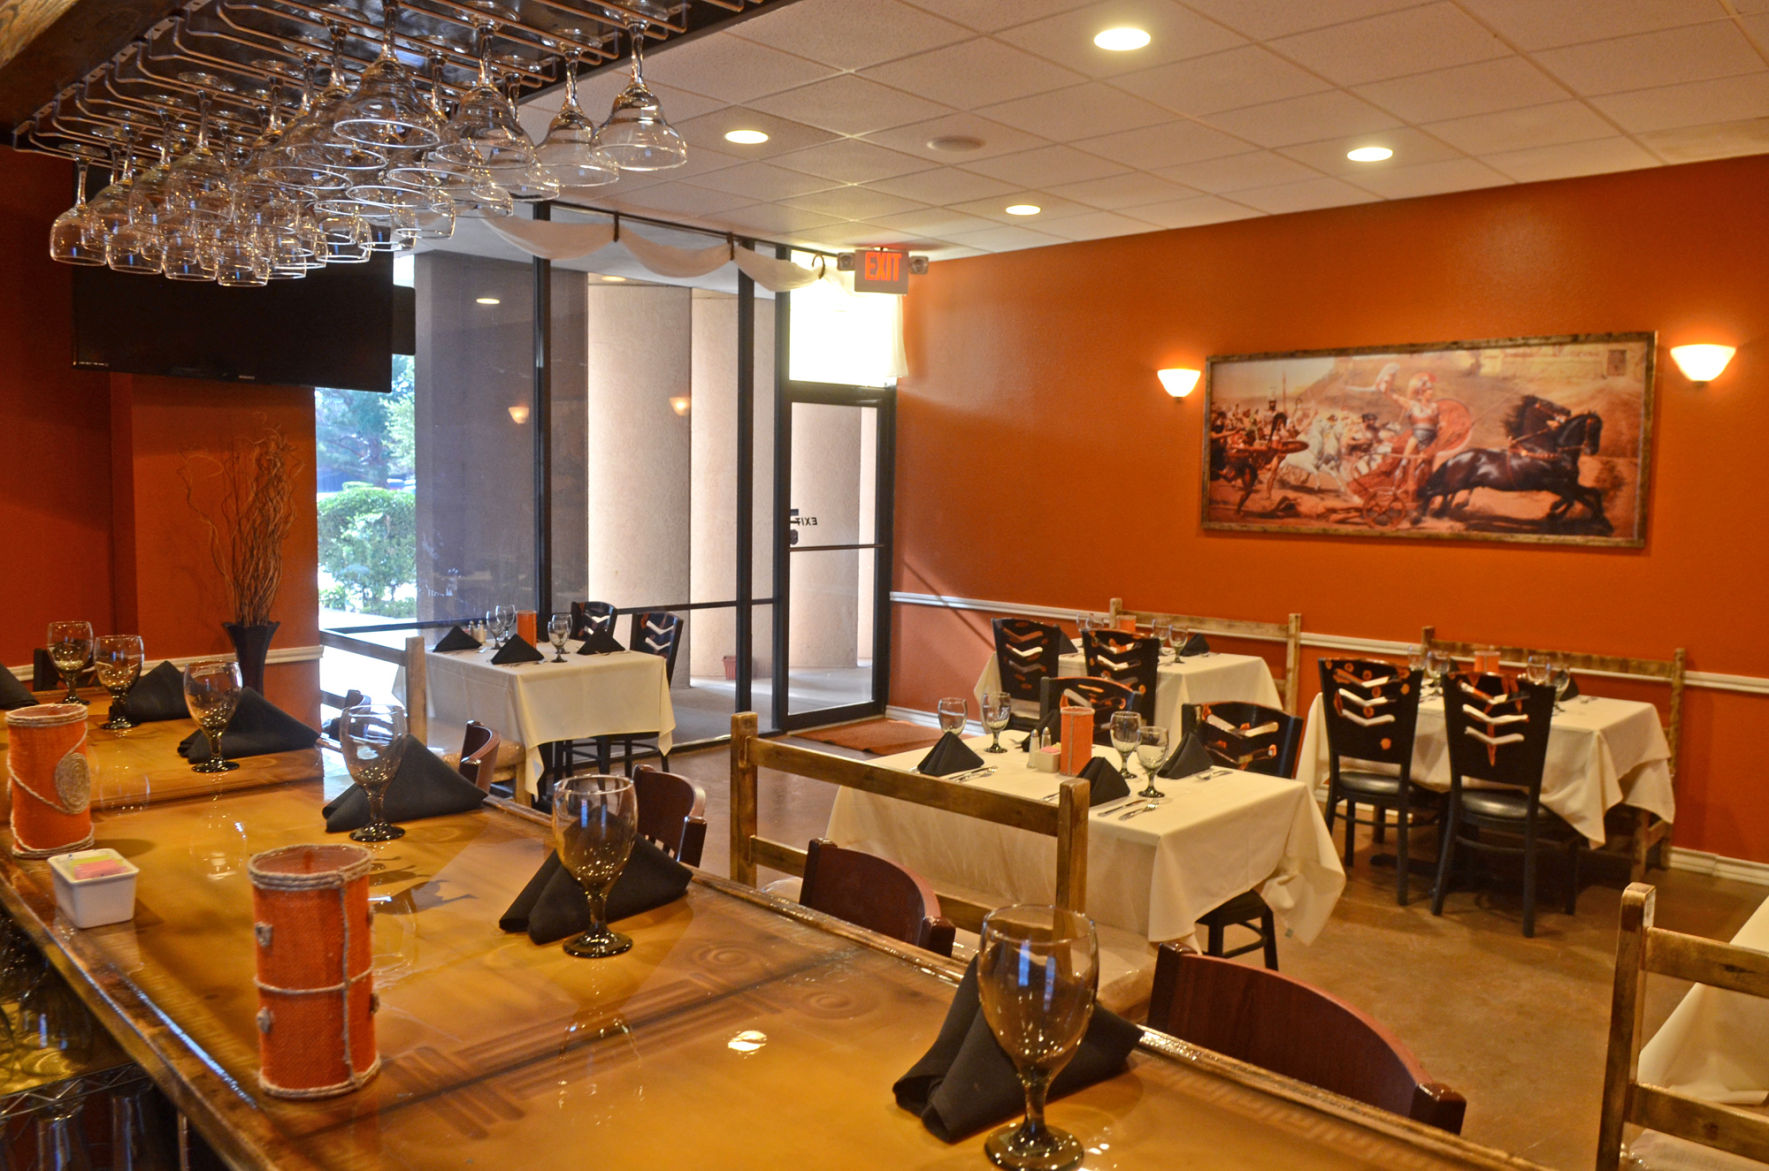 Athenian Restaurant opens today in north Midland - Midland Reporter ...